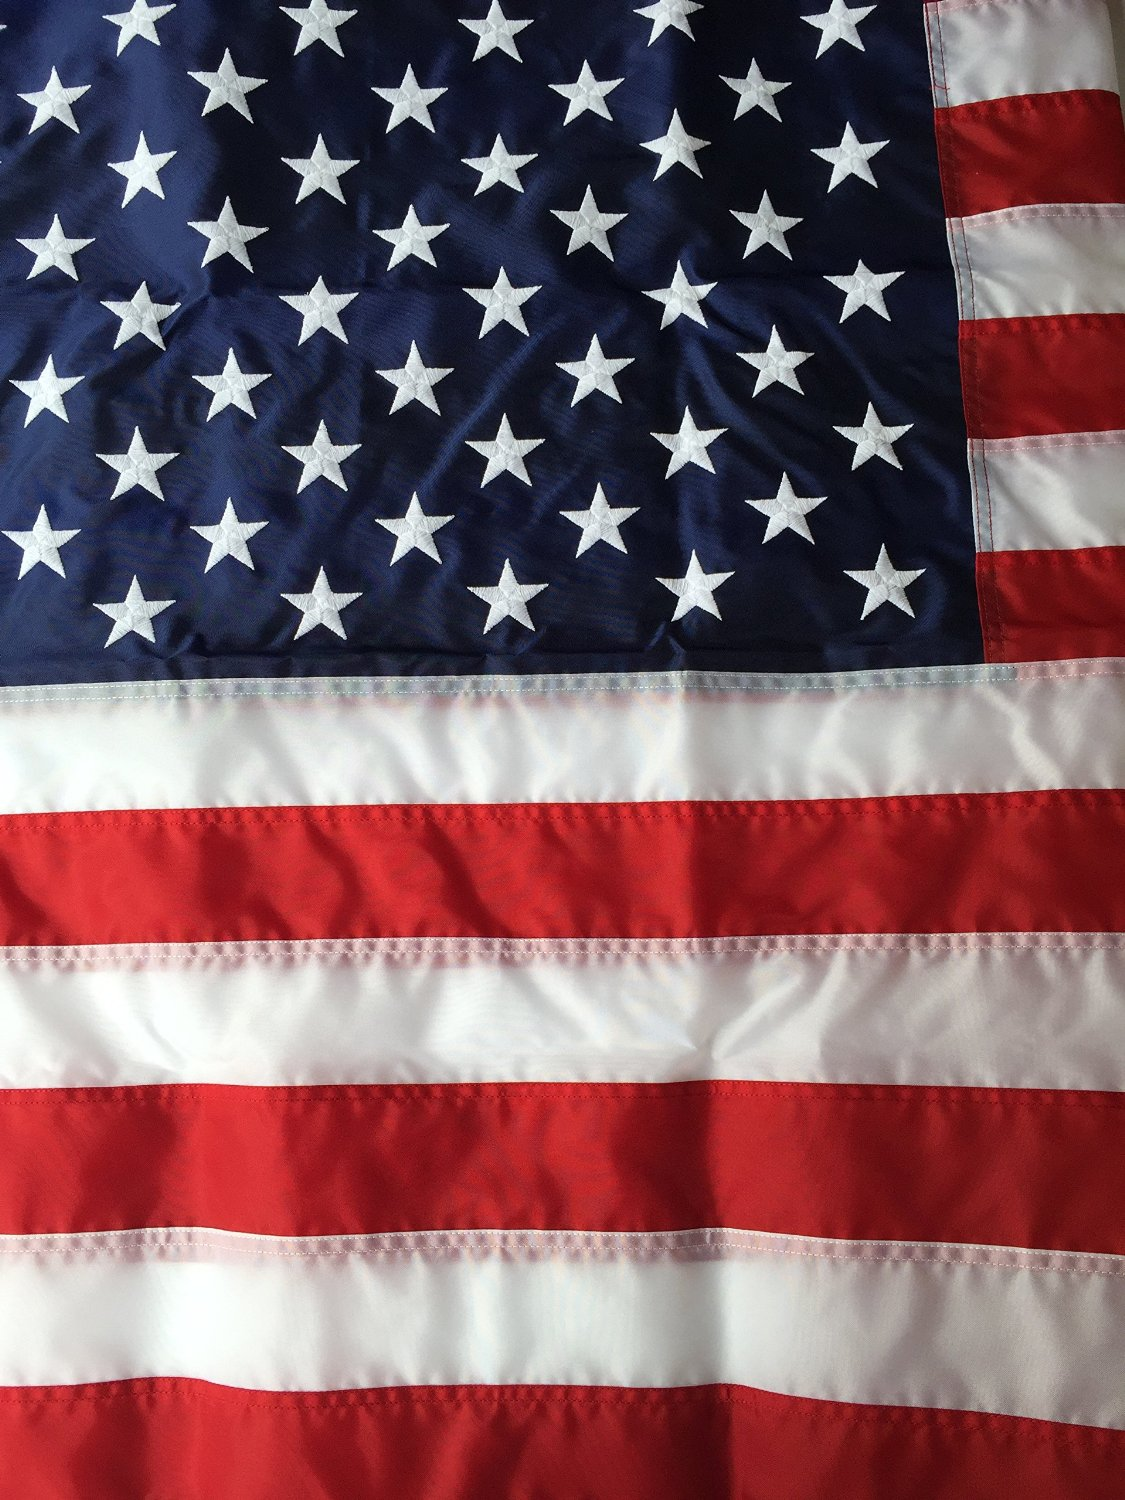 e30f9bf1deea Get Quotations · 15x25 Best Commercial Grade Nylon American Flag 15 x25  US  Flag Made in the